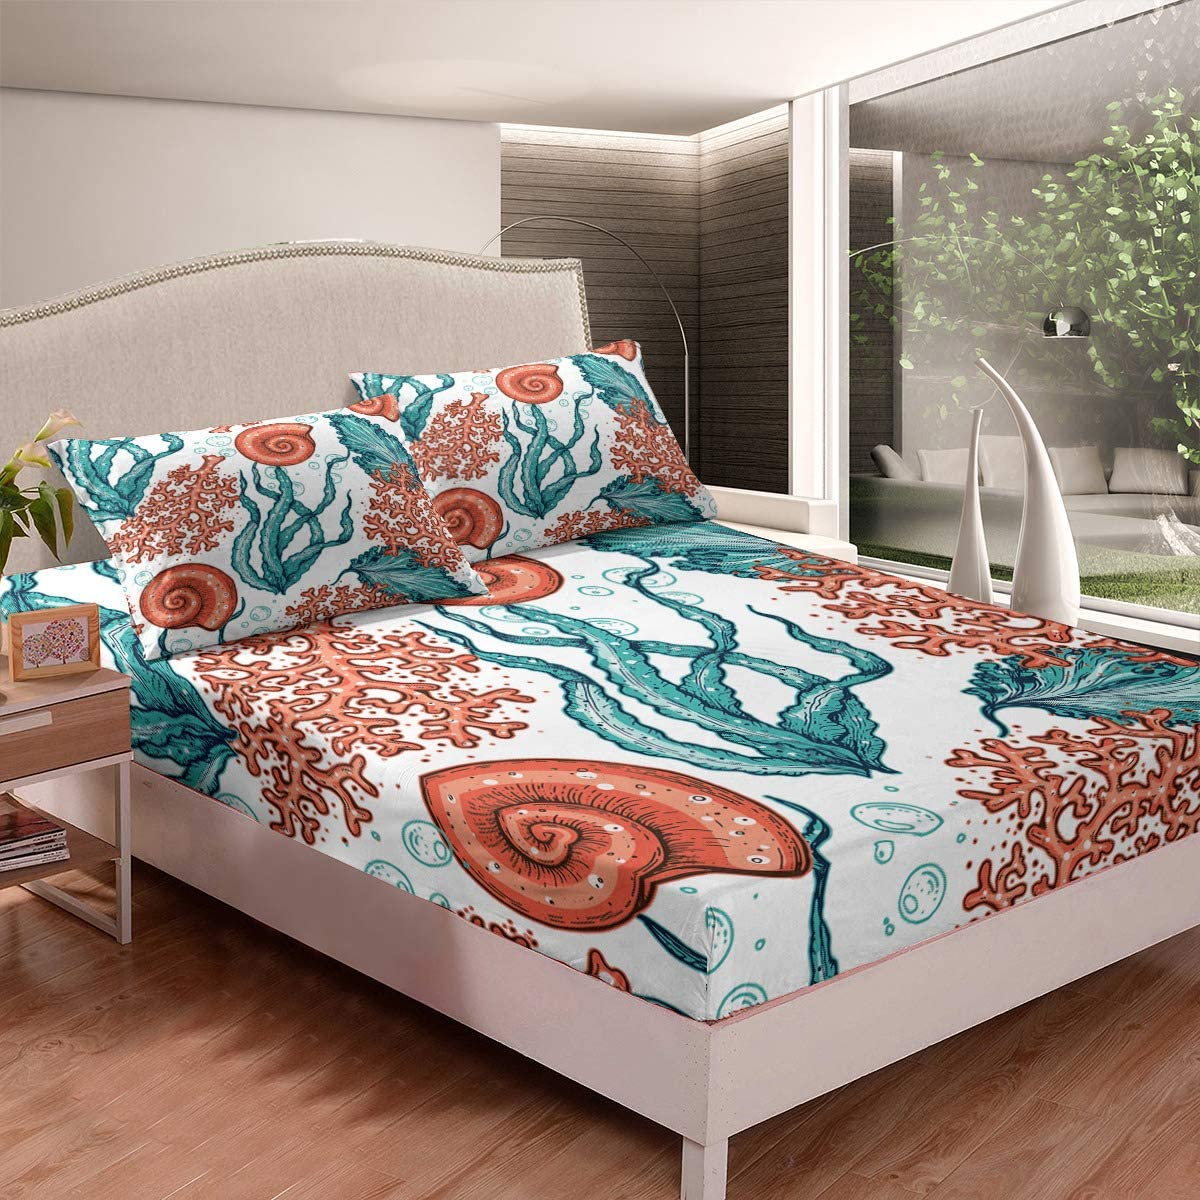 Snails Spasm price Shrubs Coral Bed Chicago Mall Fitted Sheet Brushed M Double Soft Ultra